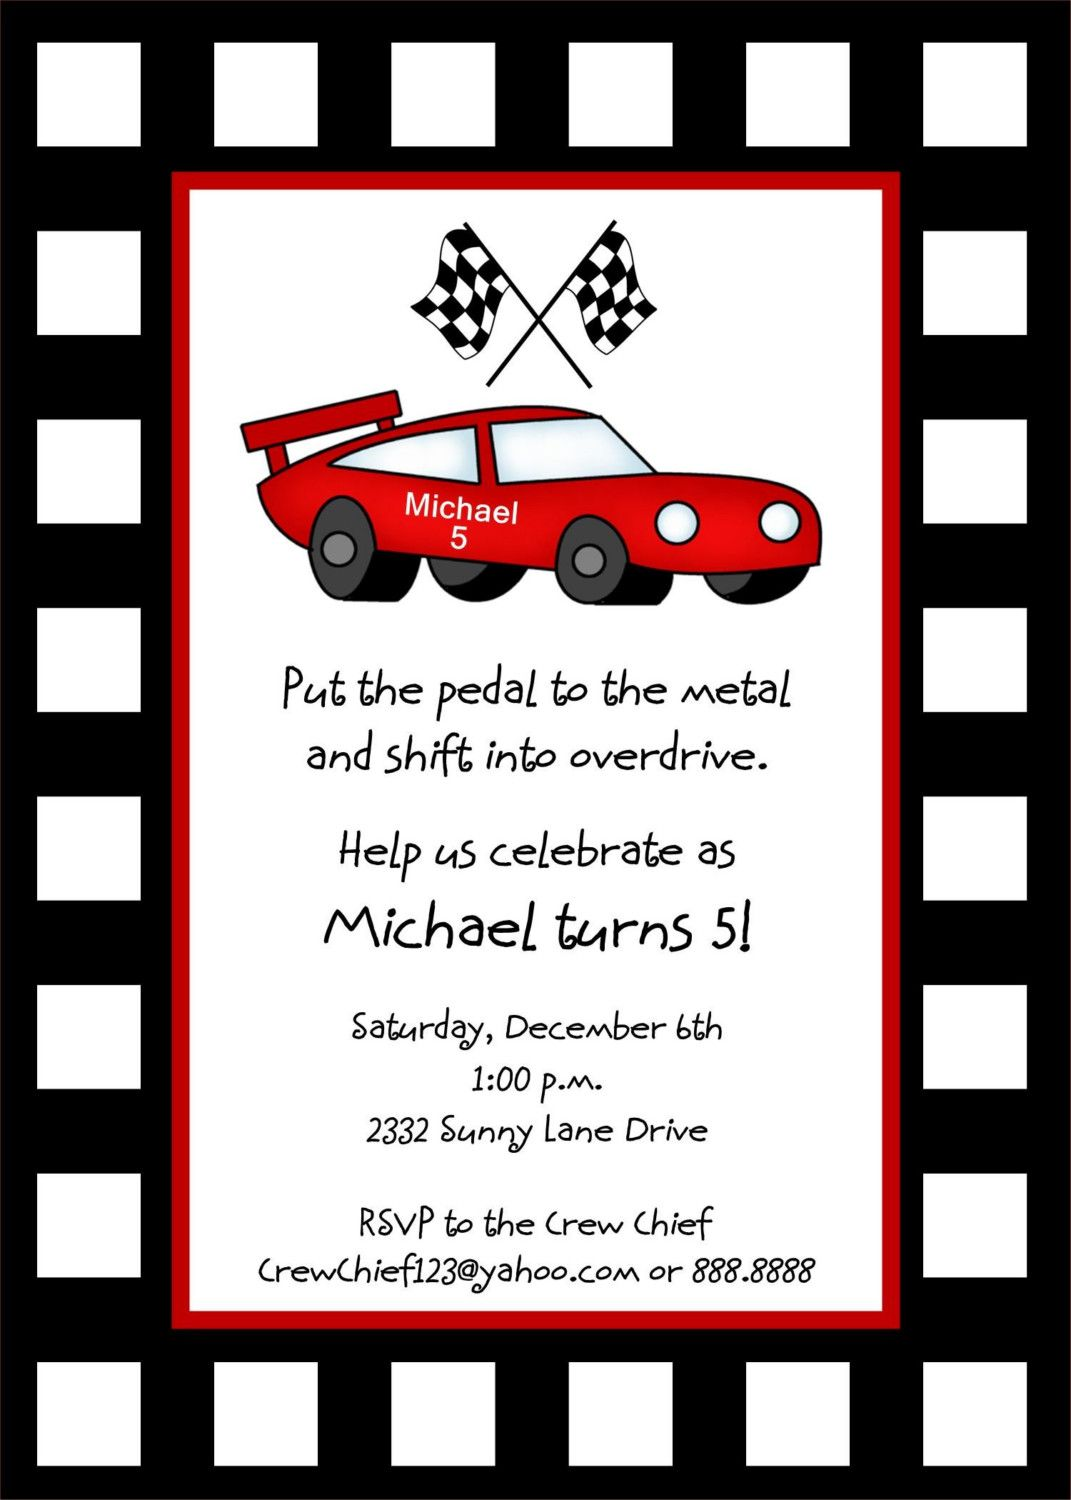 Race Car Invitation Template Free Birthday Invitation Templates Car Birthday Party Invitations Cars Birthday Invitations